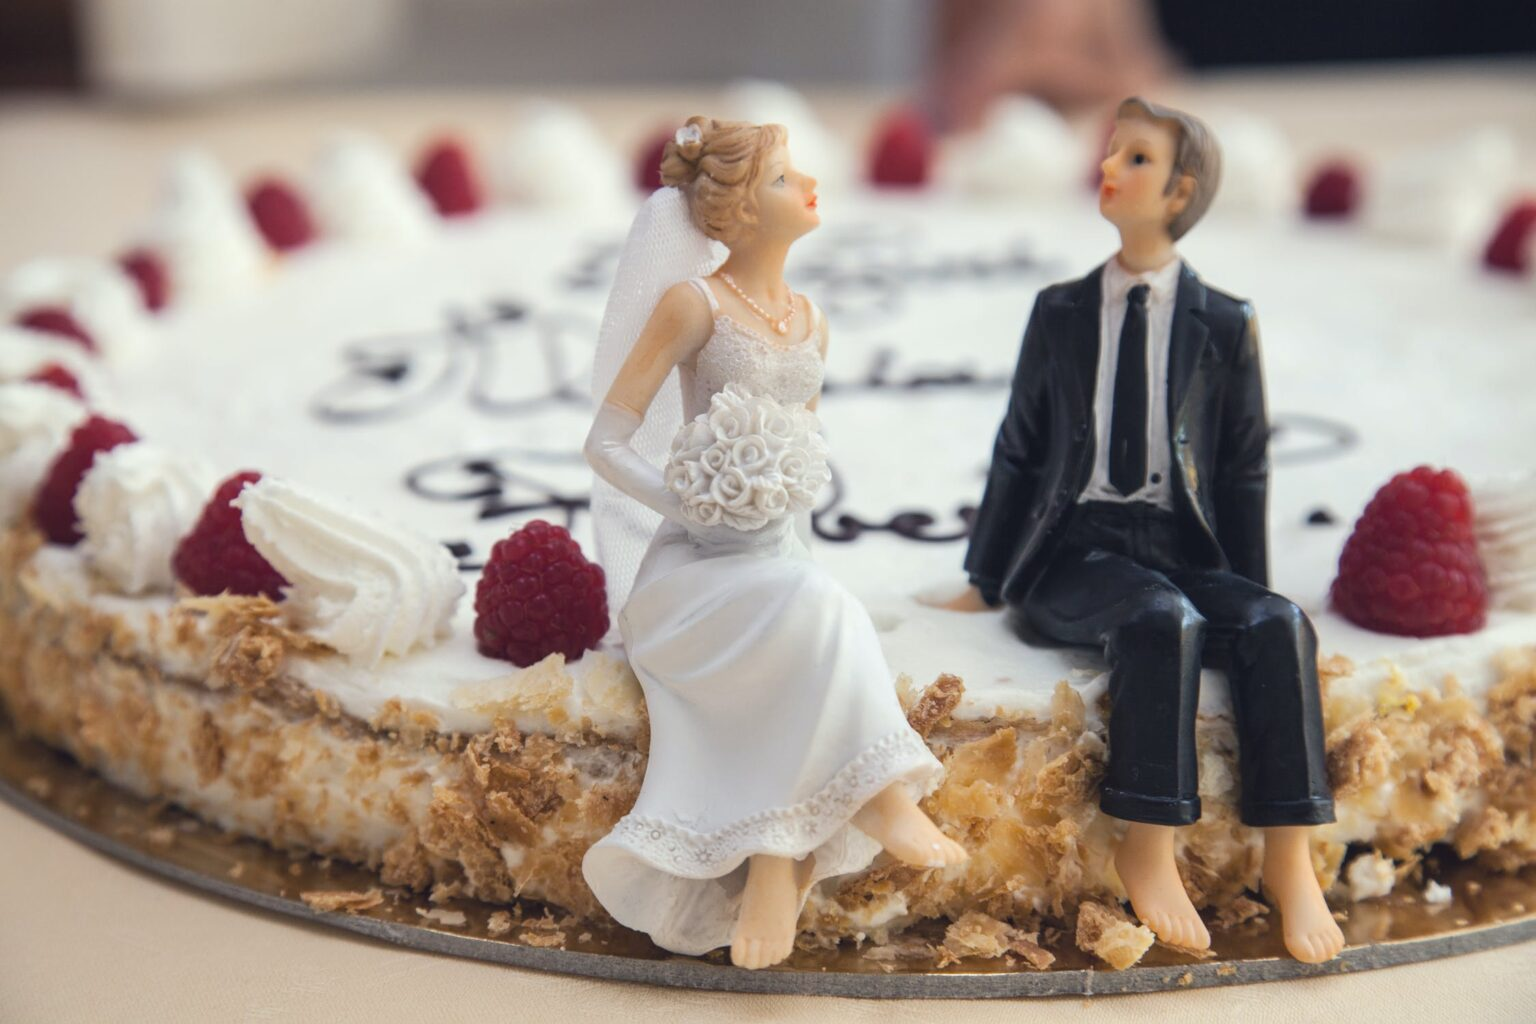 couple wondering whether they should get a prenup